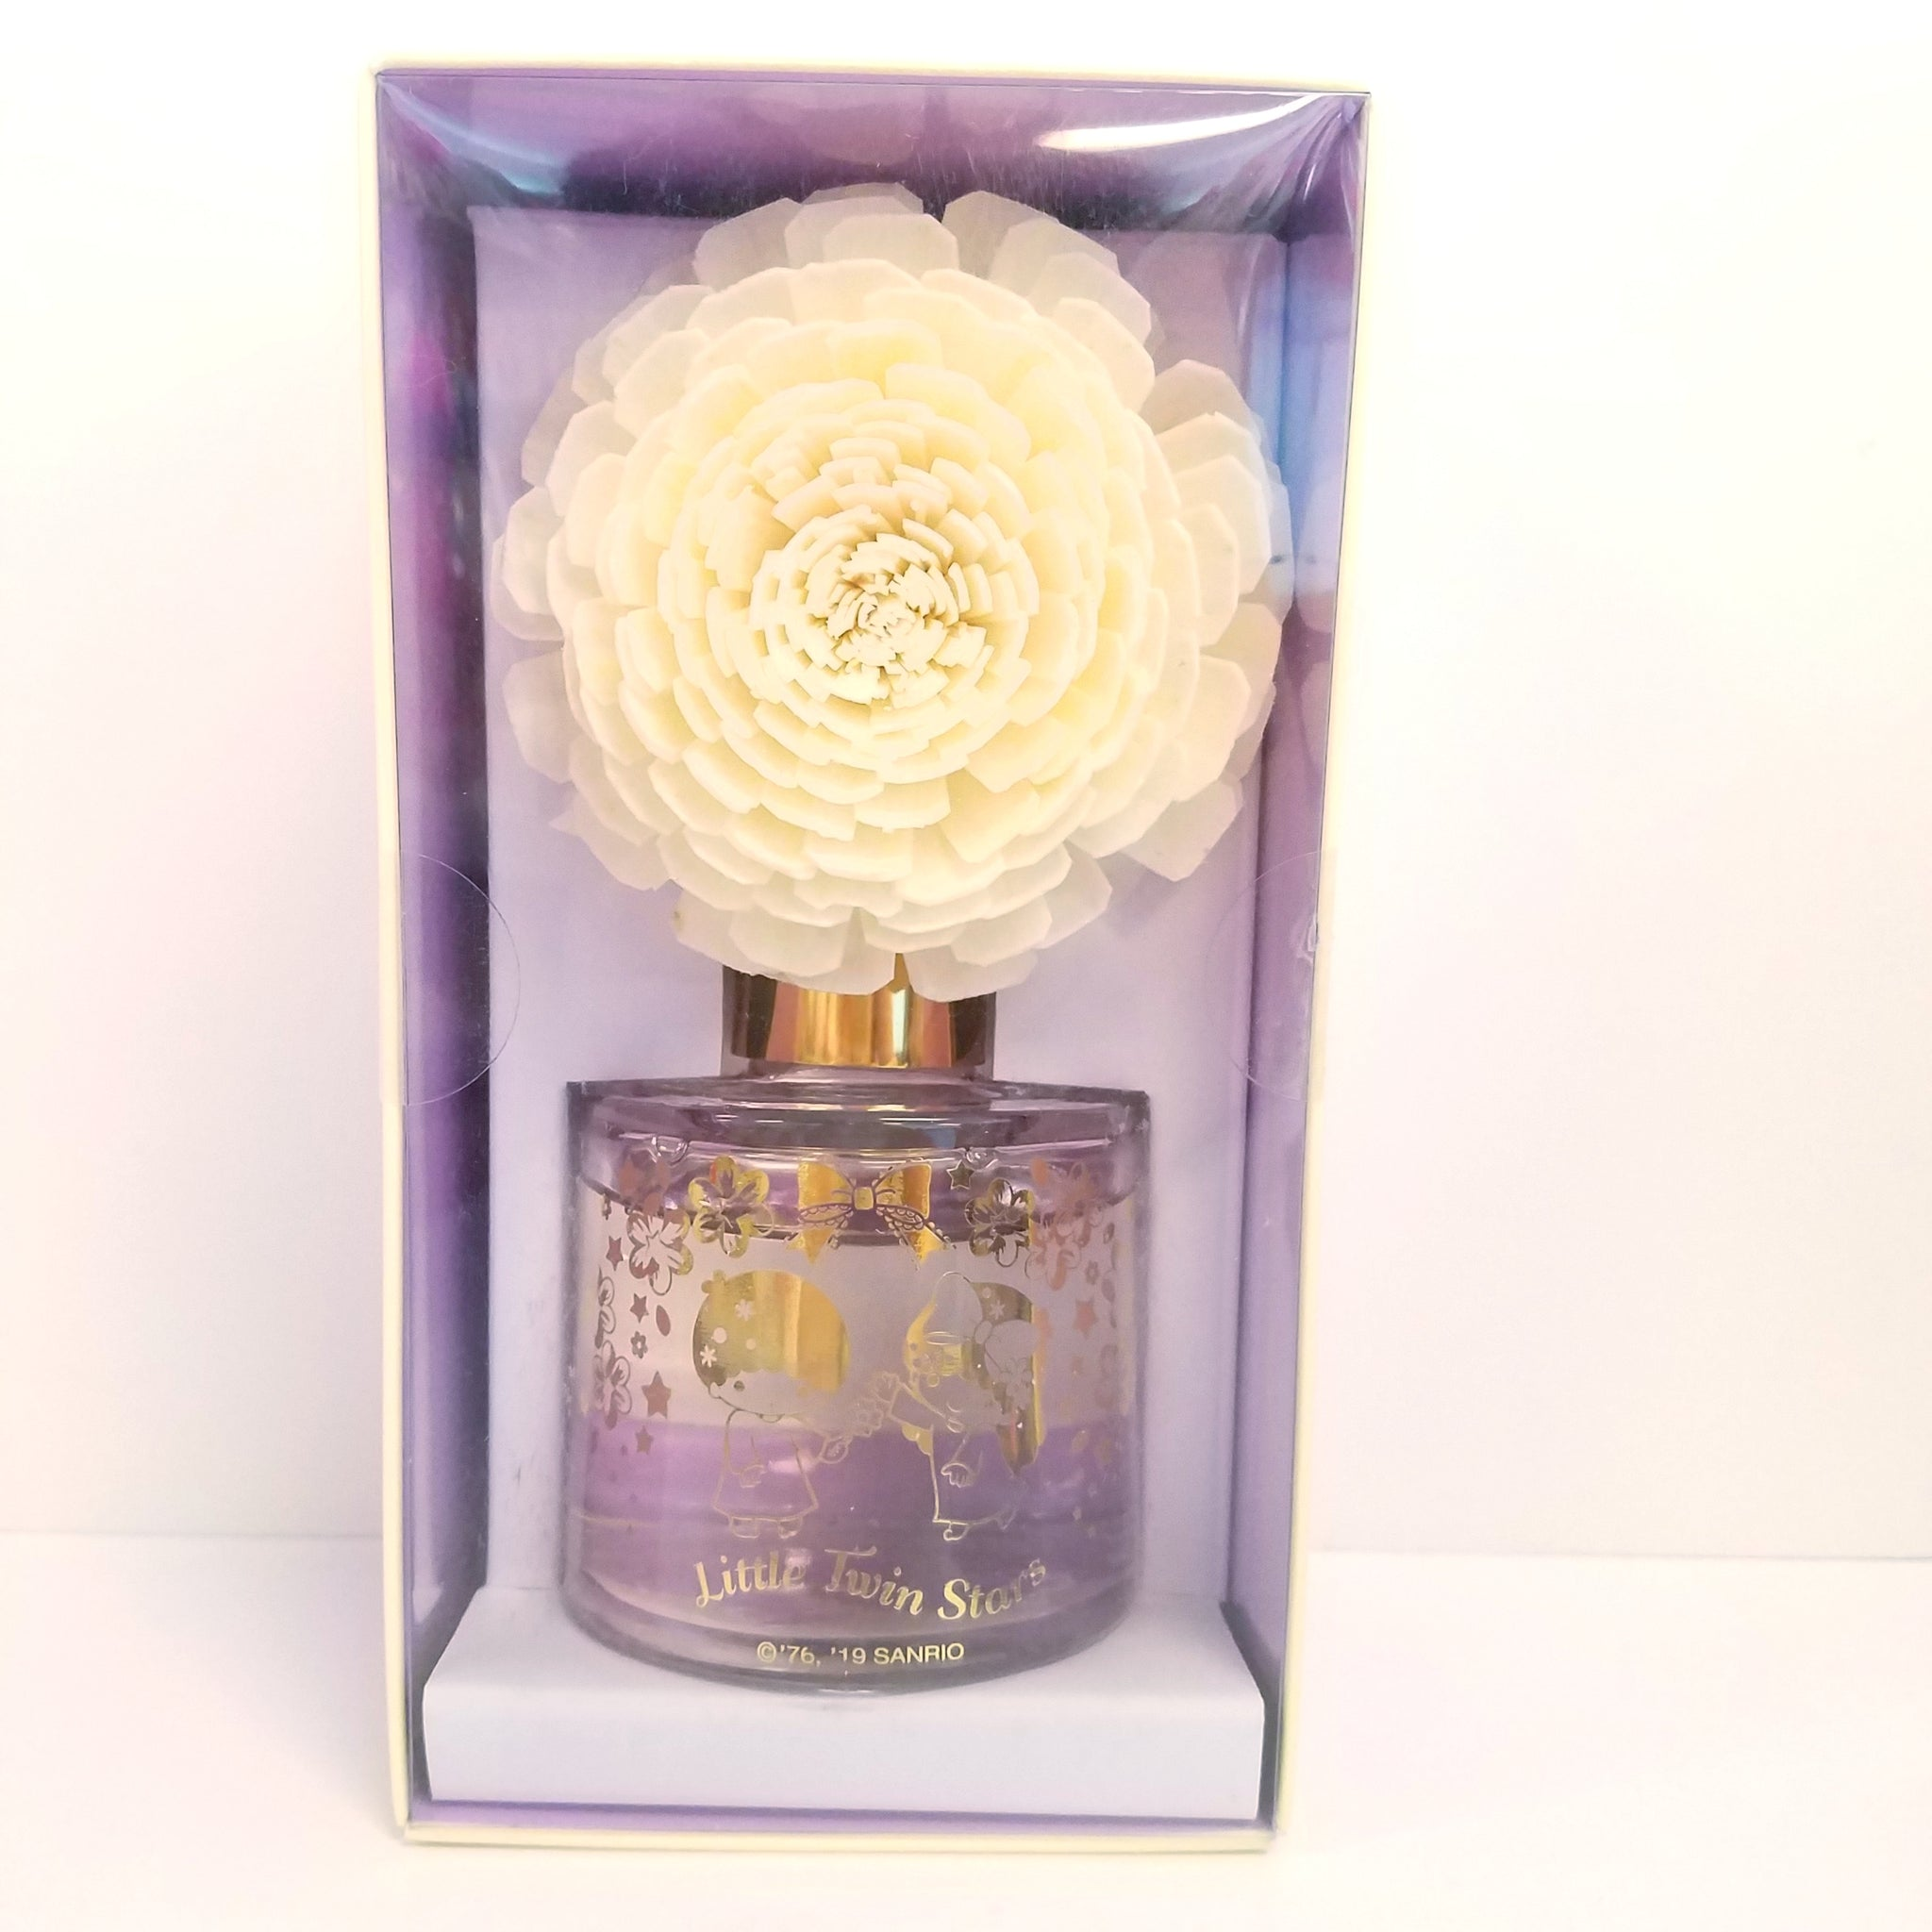 Little Twin Stars Rose Field Scented Fragrance Diffuser